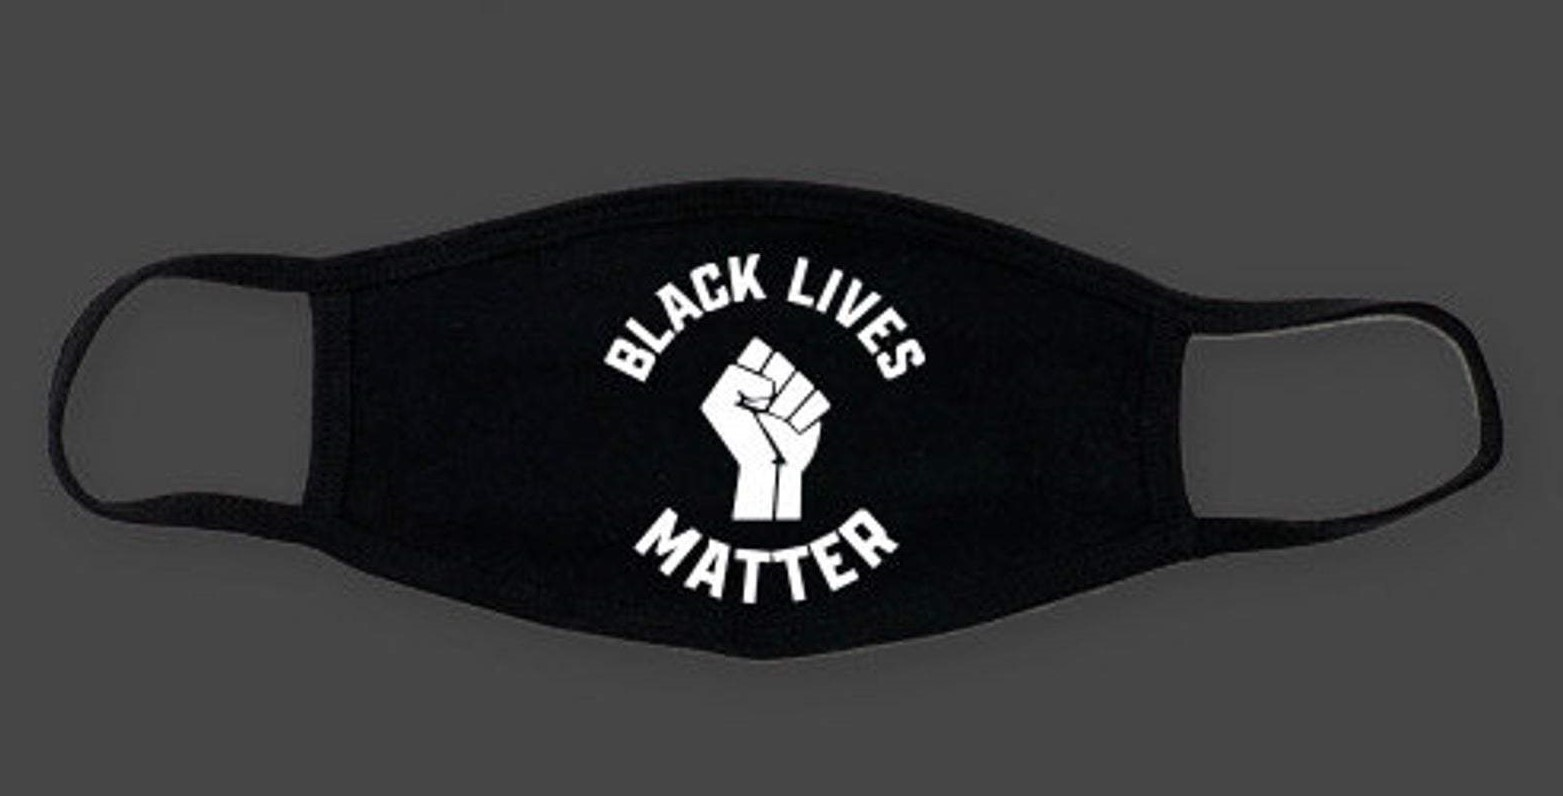 This Black Lives Matter face mask lets you send a powerful message without saying a word 15